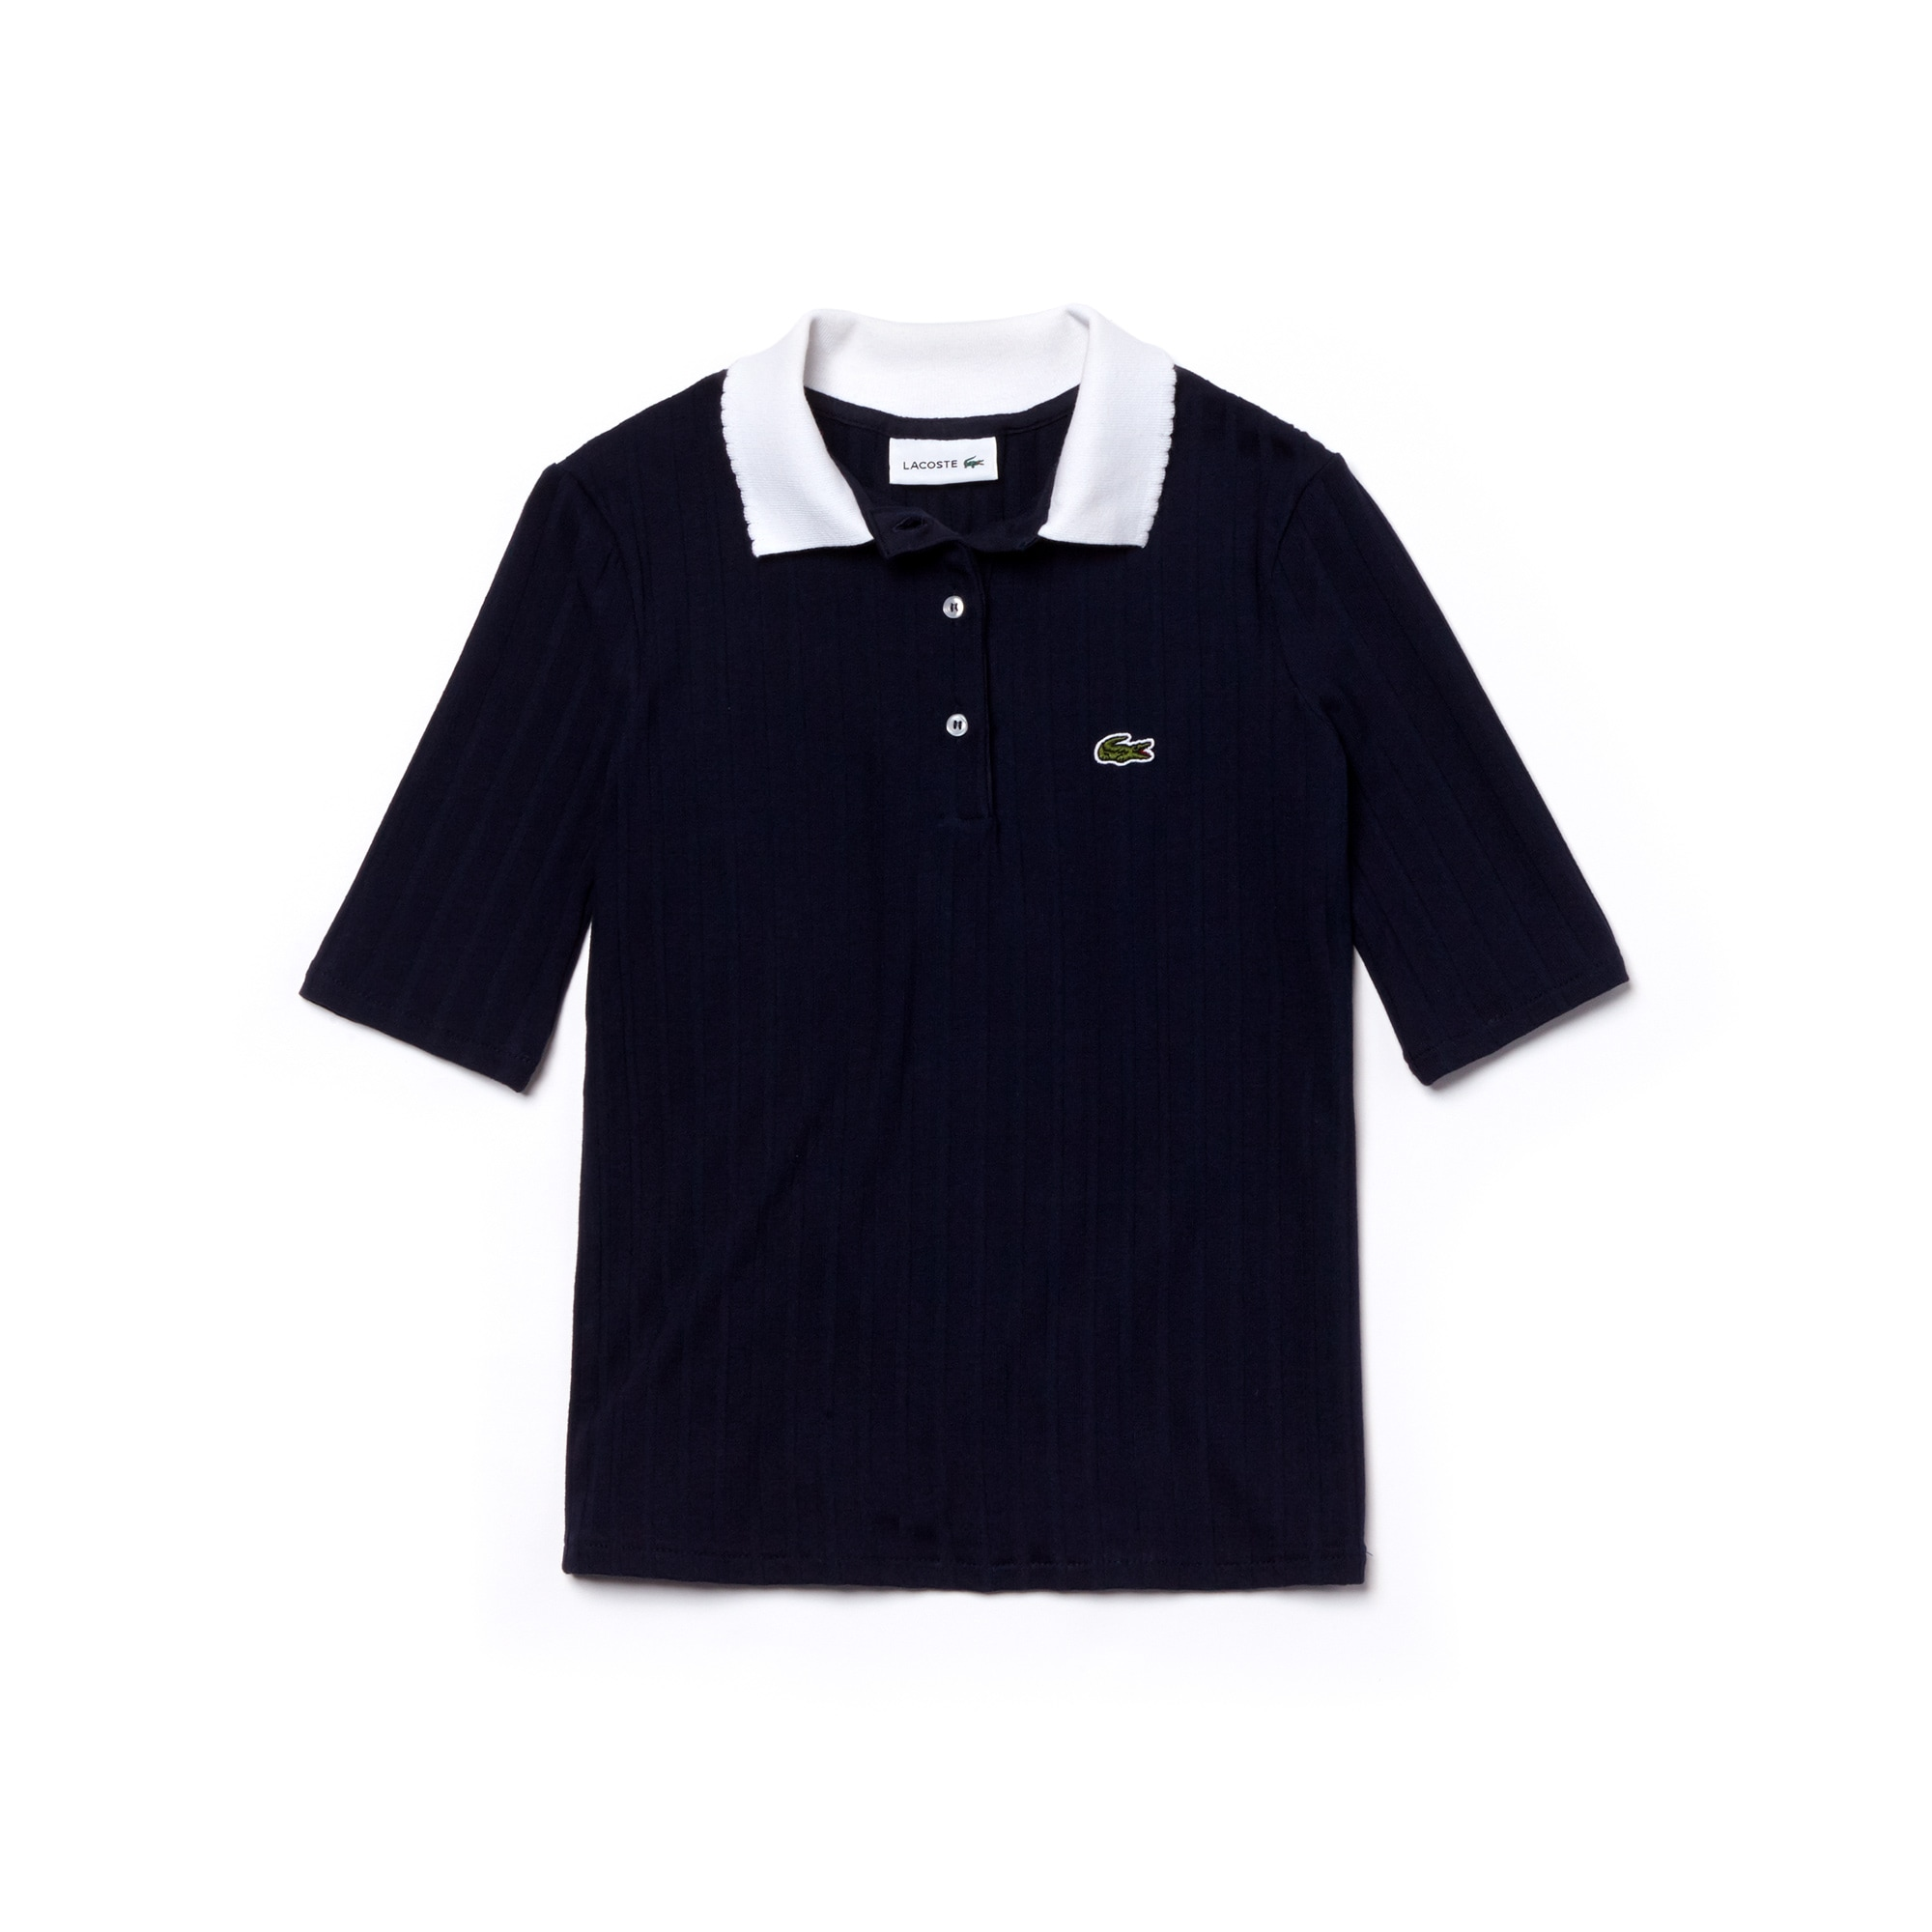 Girls' Lacoste Contrast Neck Stretch Ribbed Knit Polo Shirt